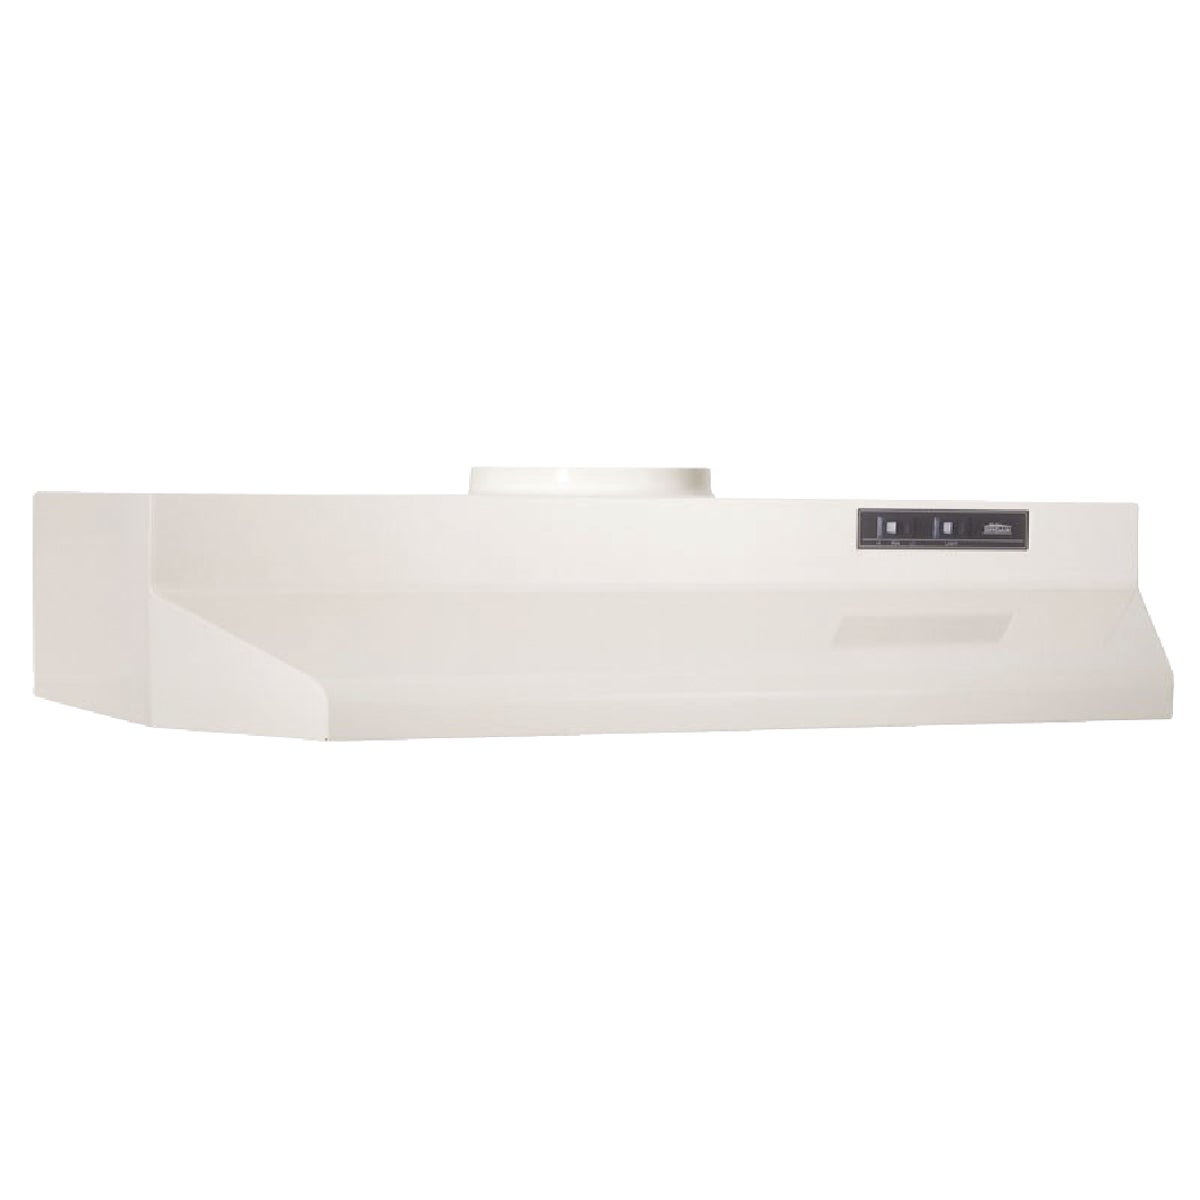 "30"" ALMOND CNV RANGEHOOD - F403008 by Broan Nutone"